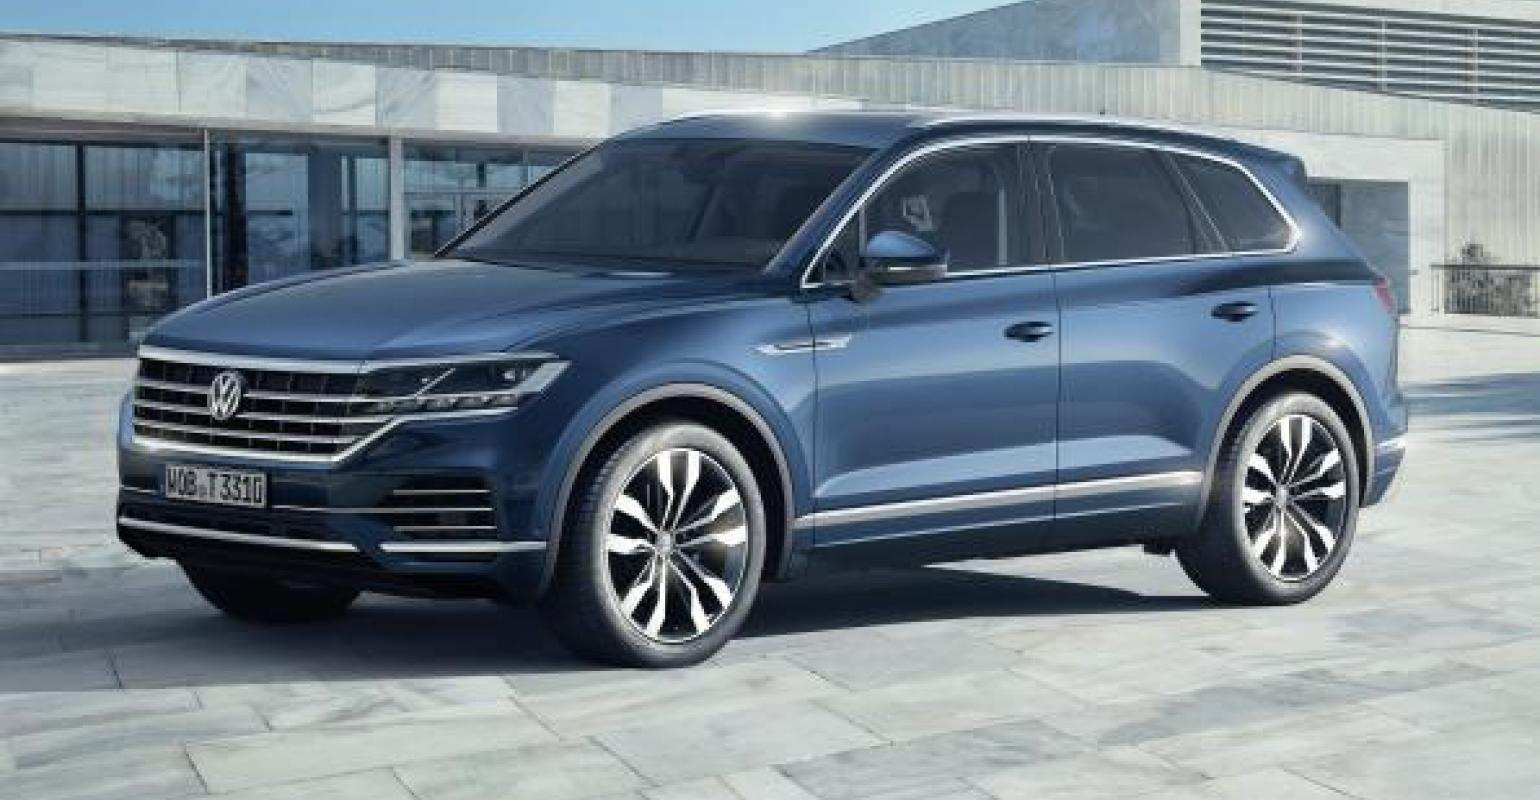 14 Best Review Volkswagen Touareg Hybrid 2020 Release with Volkswagen Touareg Hybrid 2020